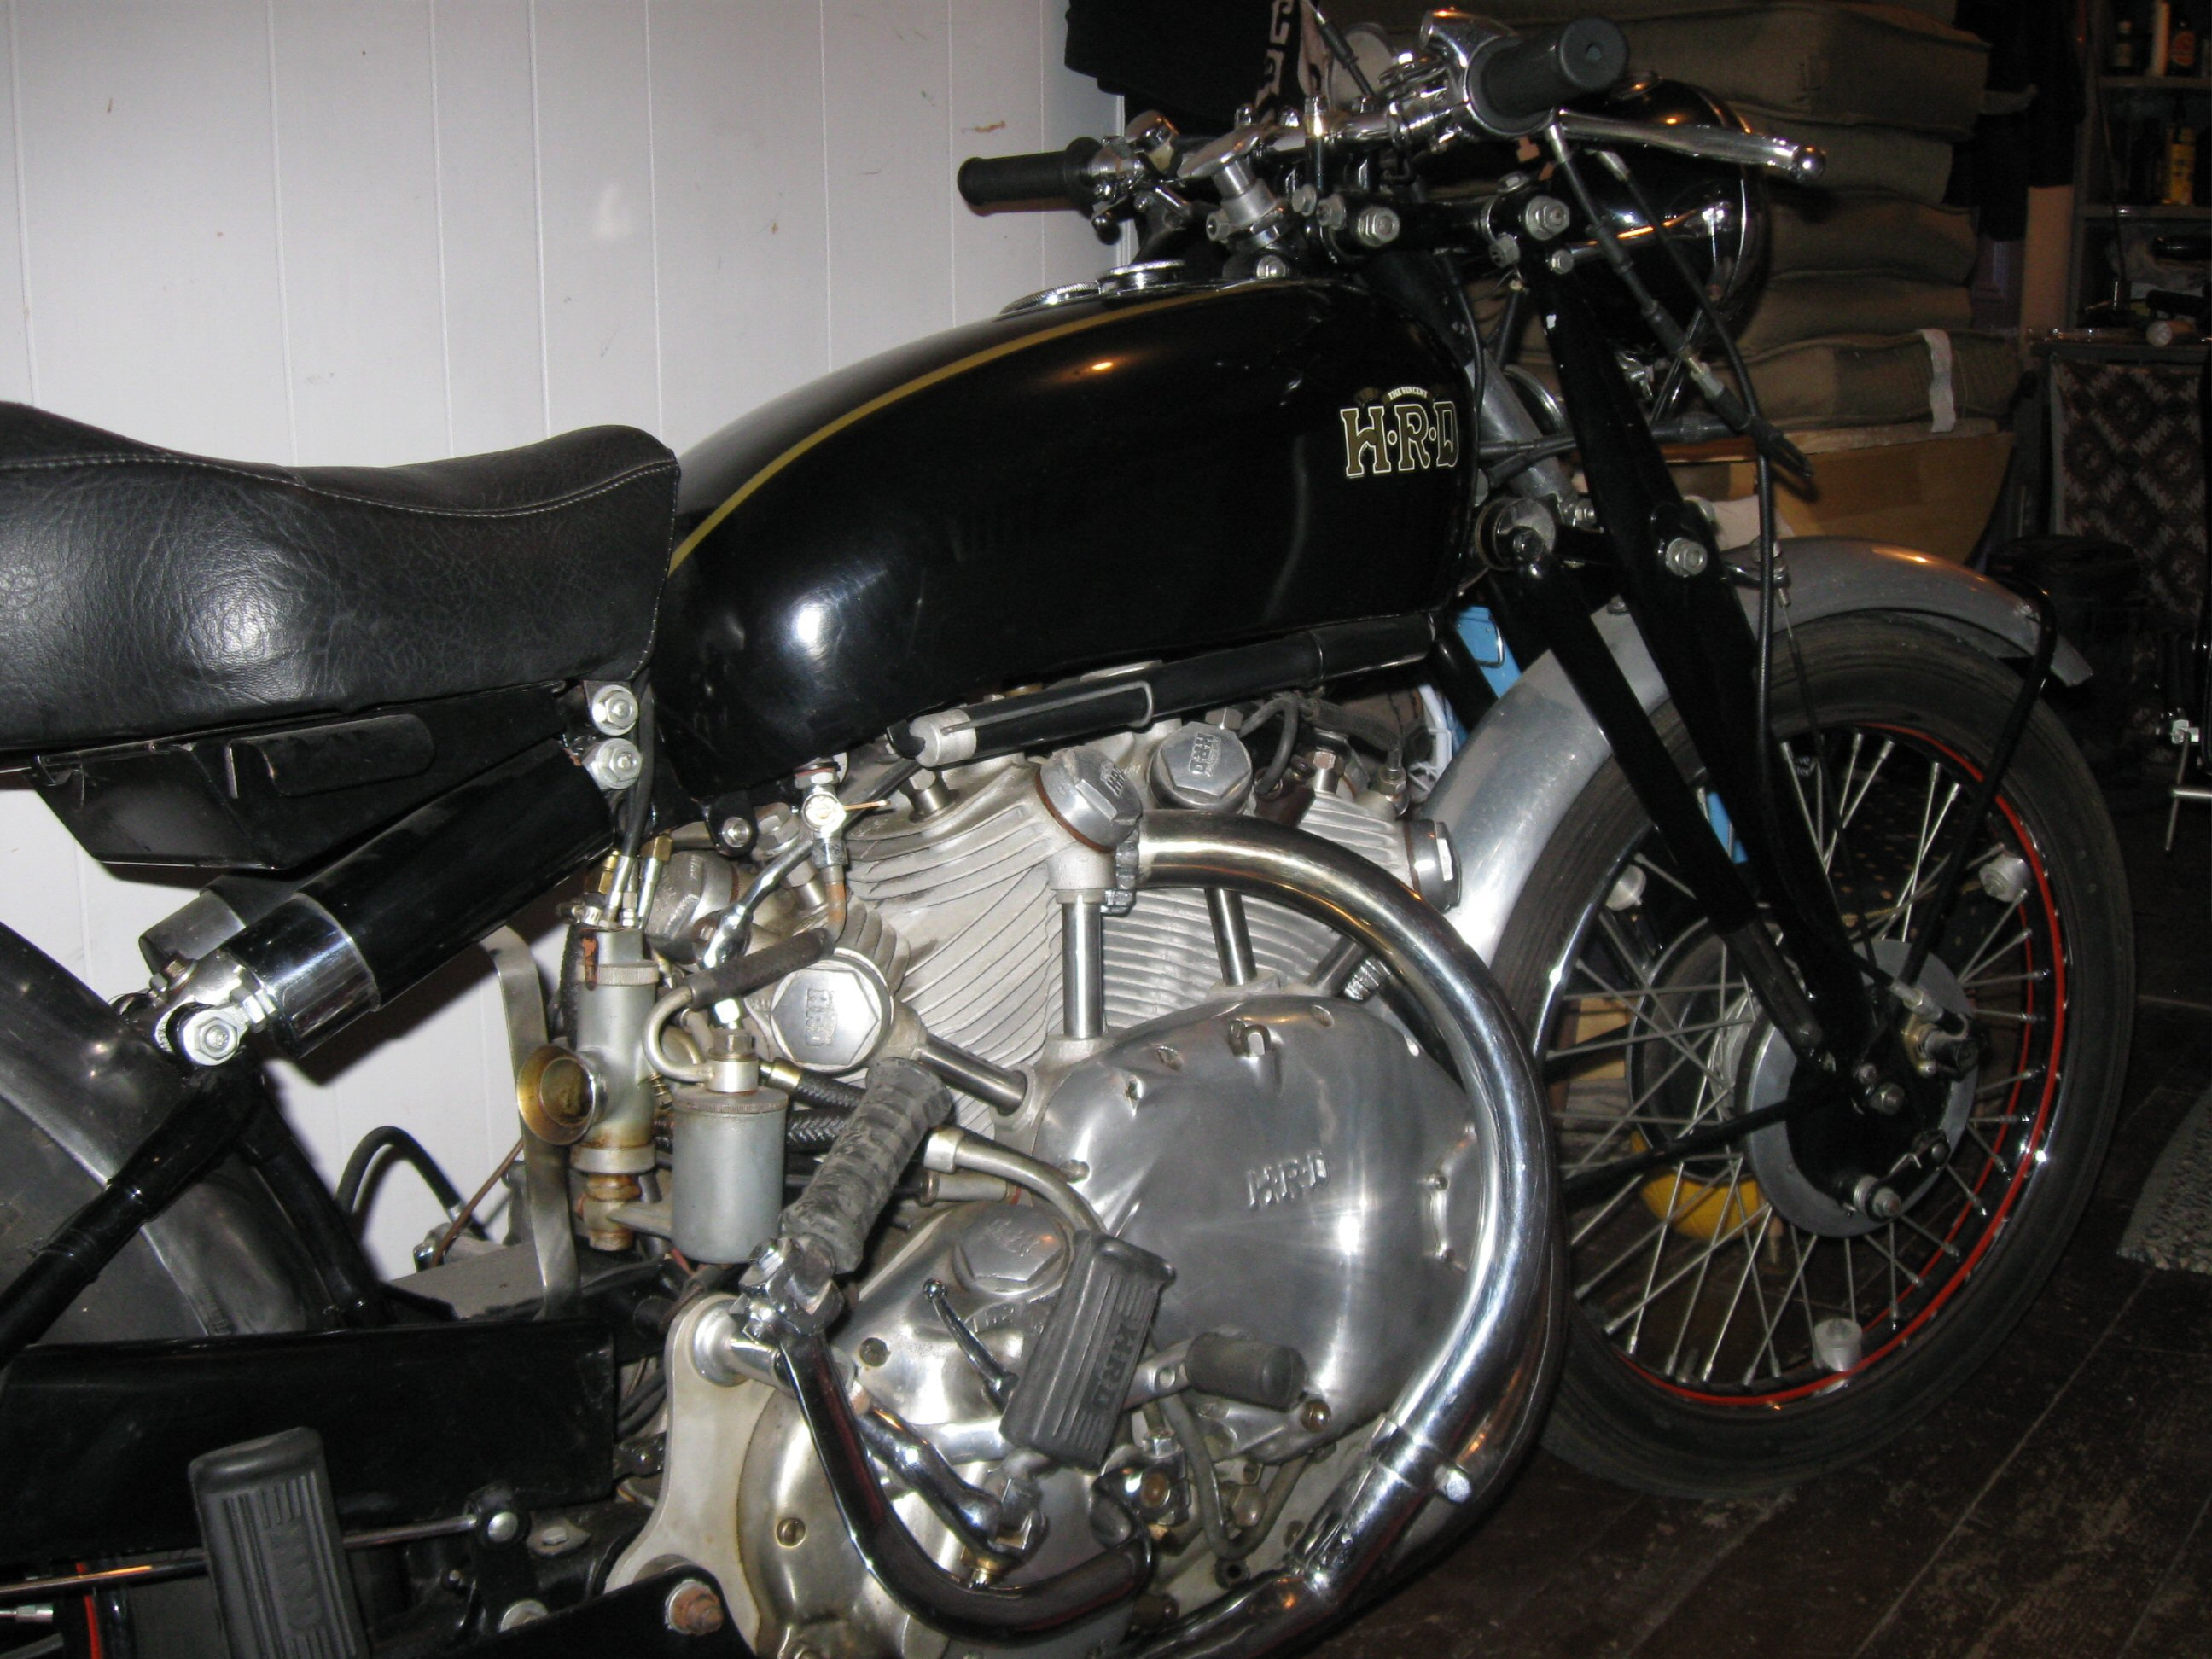 Vincent Motorcycle Free Classifieds 1948 Indian Engine Diagram Sold 1949 Rapide In Canada It Has A Bit Of Provenance Runs Fine And All Matching Cases Frame Is Registered With The Voc Who Have Sent